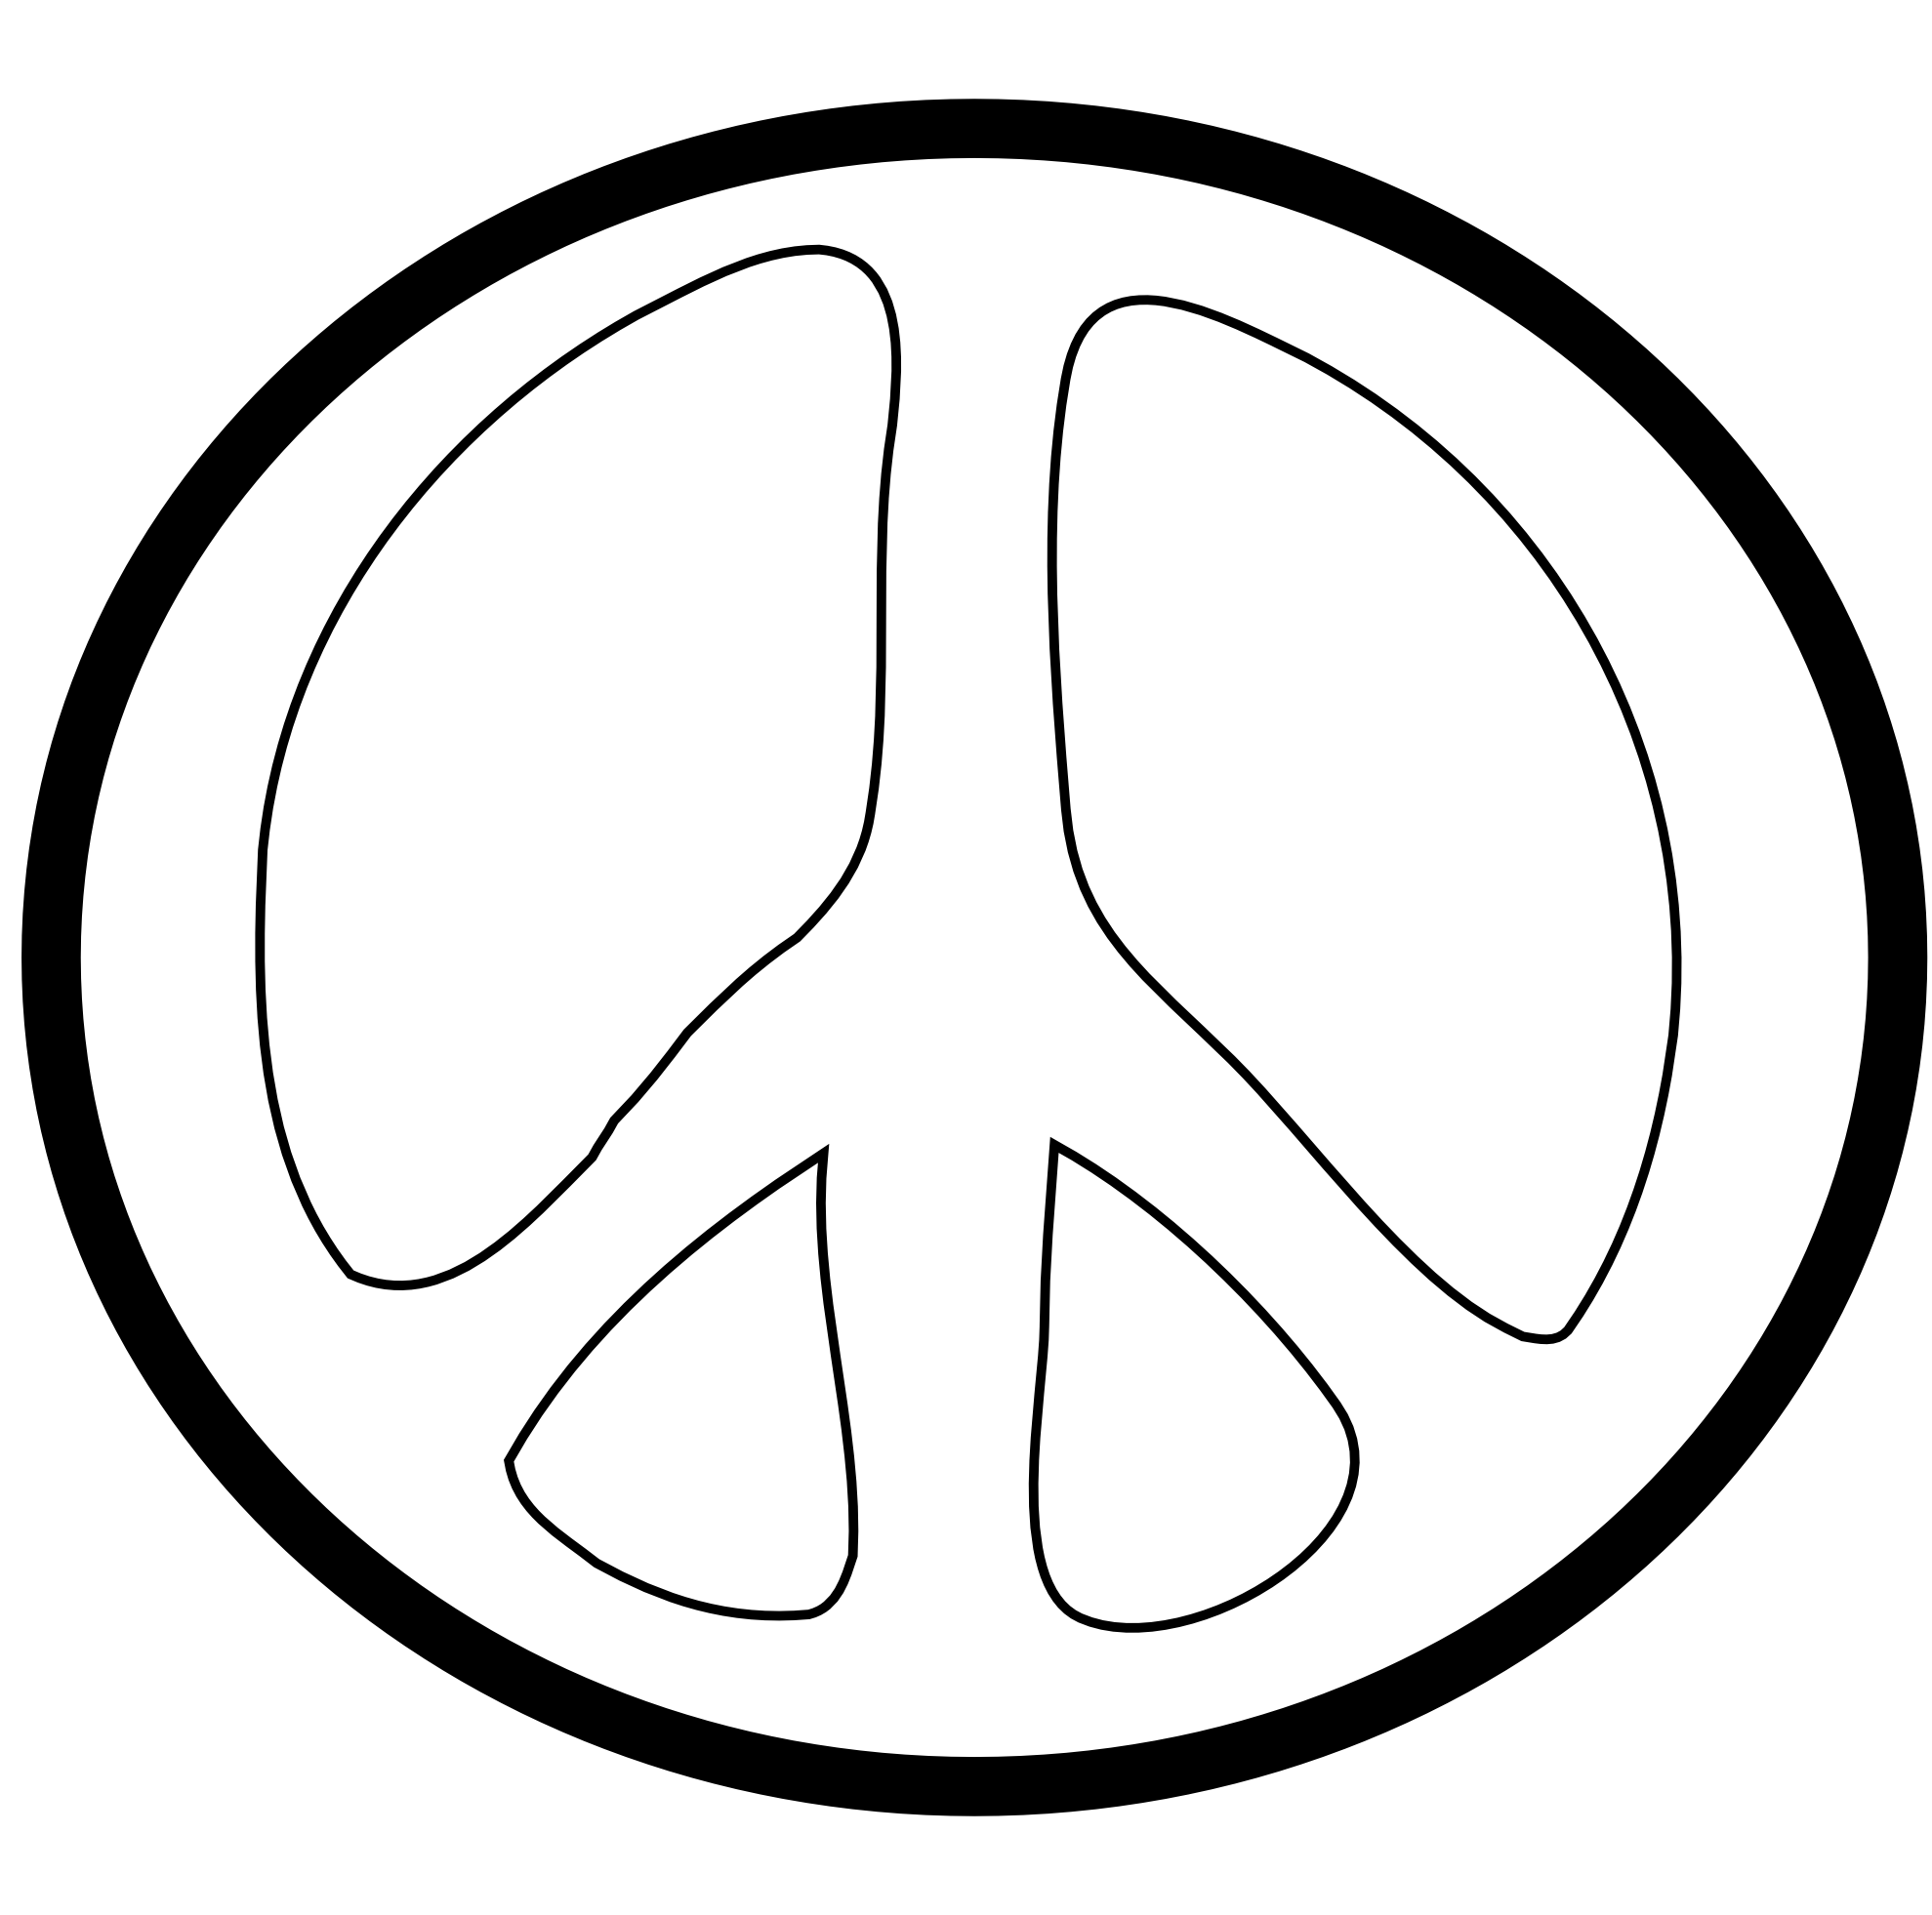 9878 additionally Good Luck Text Drawing Gm166007657 22918177 furthermore 263 as well Pink Peace Sign Clipart furthermore Cheap Zelda Wallpaper. on christmas coloring pages 20